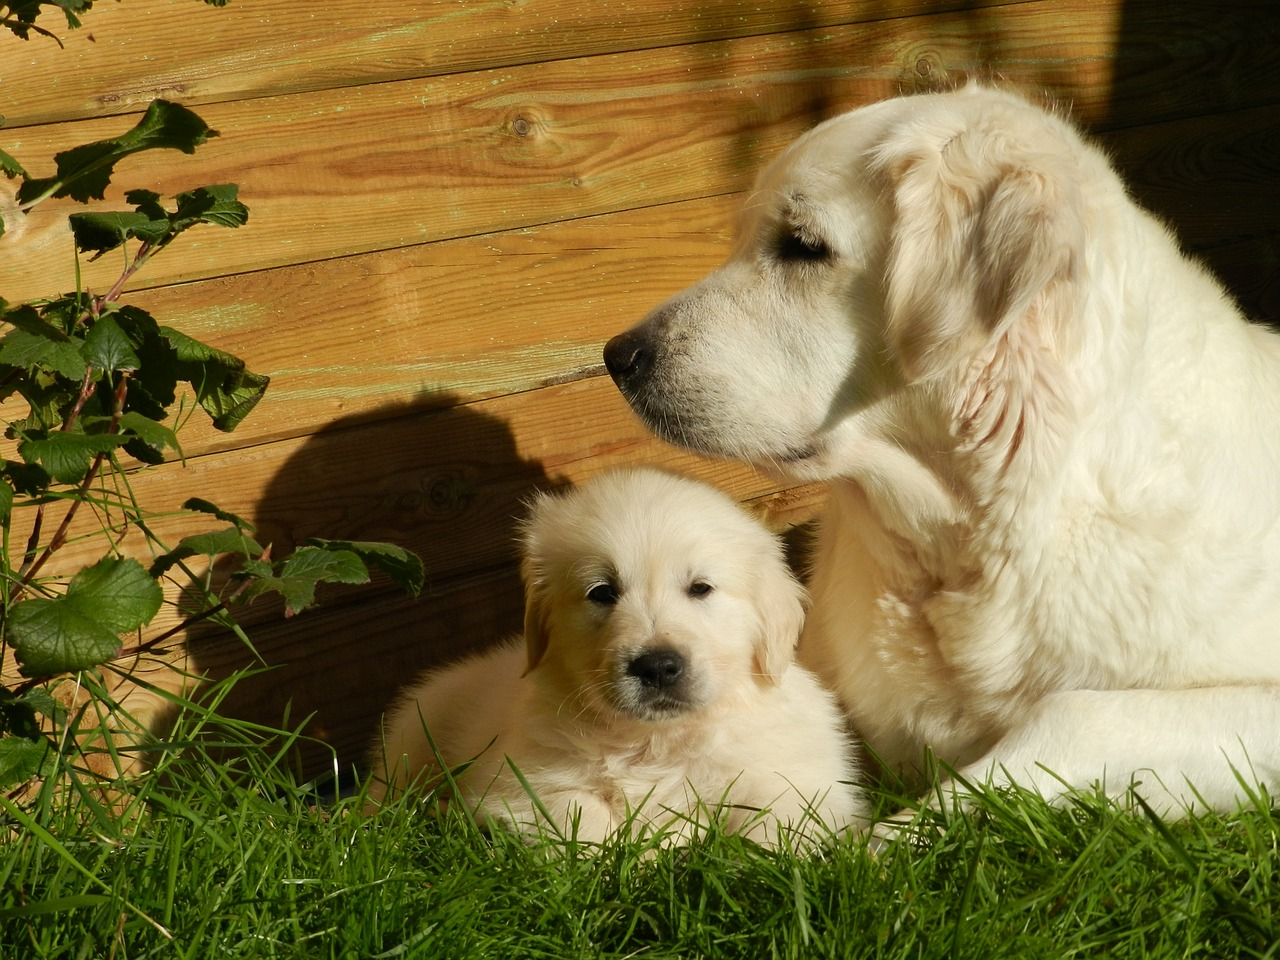 golden retriever, dog, puppy